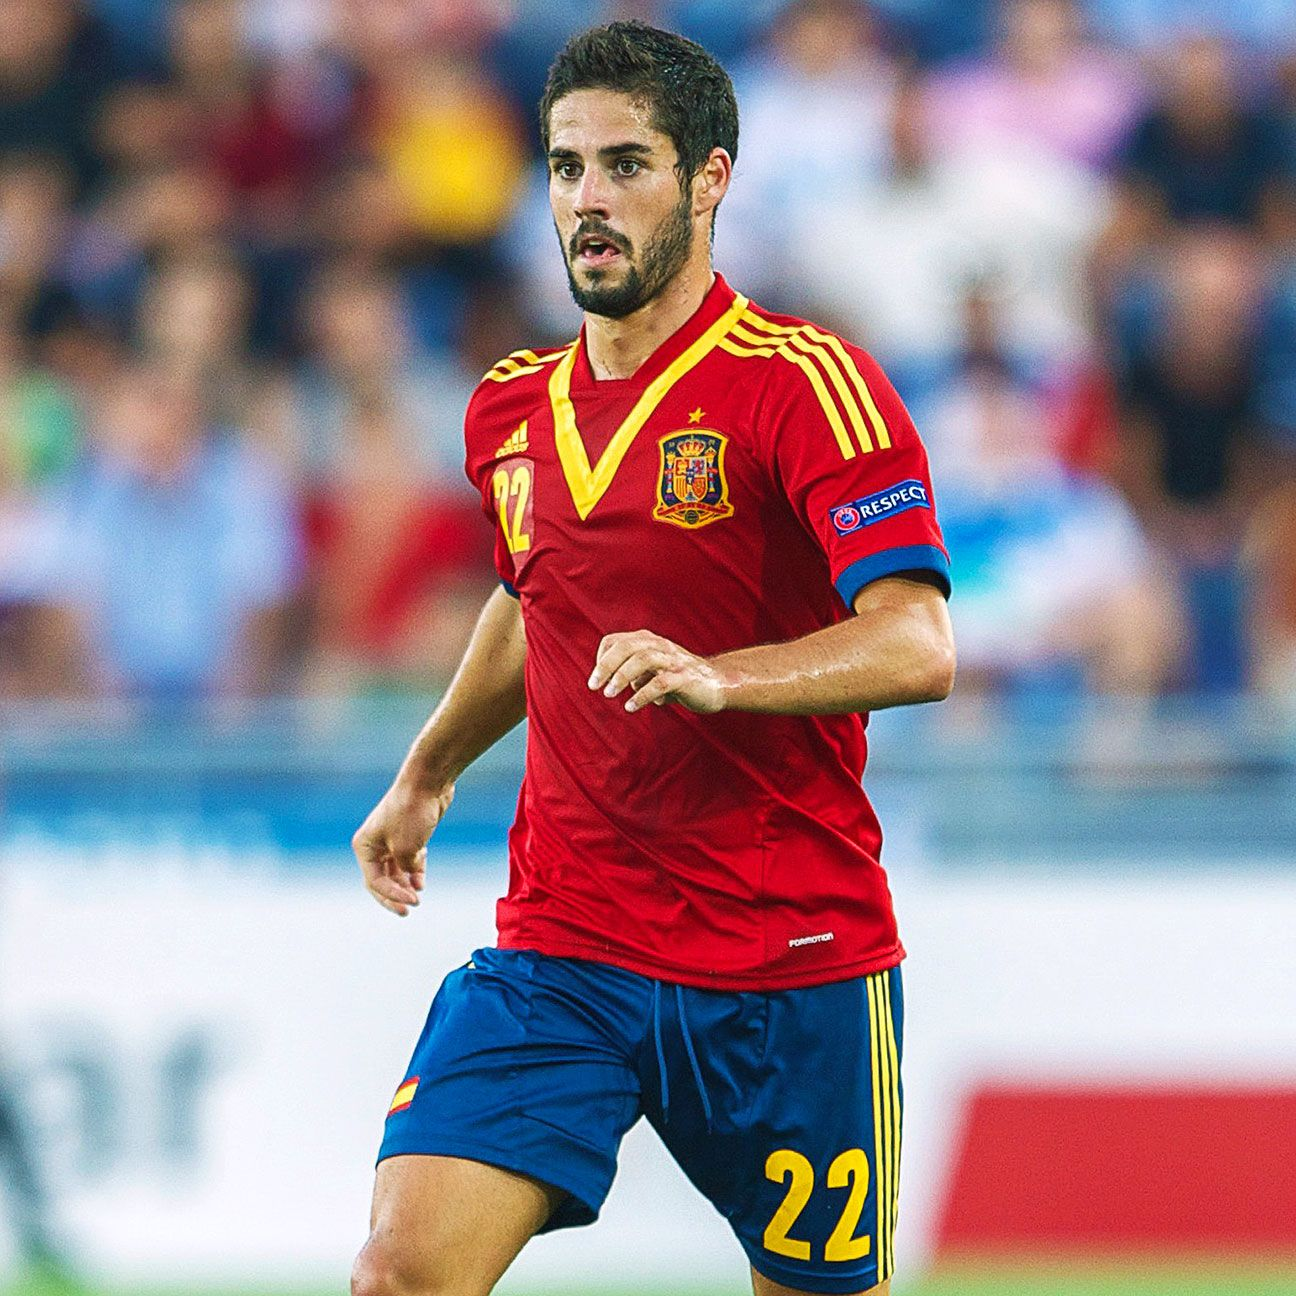 The creative streak found in Isco could be Spain's key in unlocking defences that pack the box.